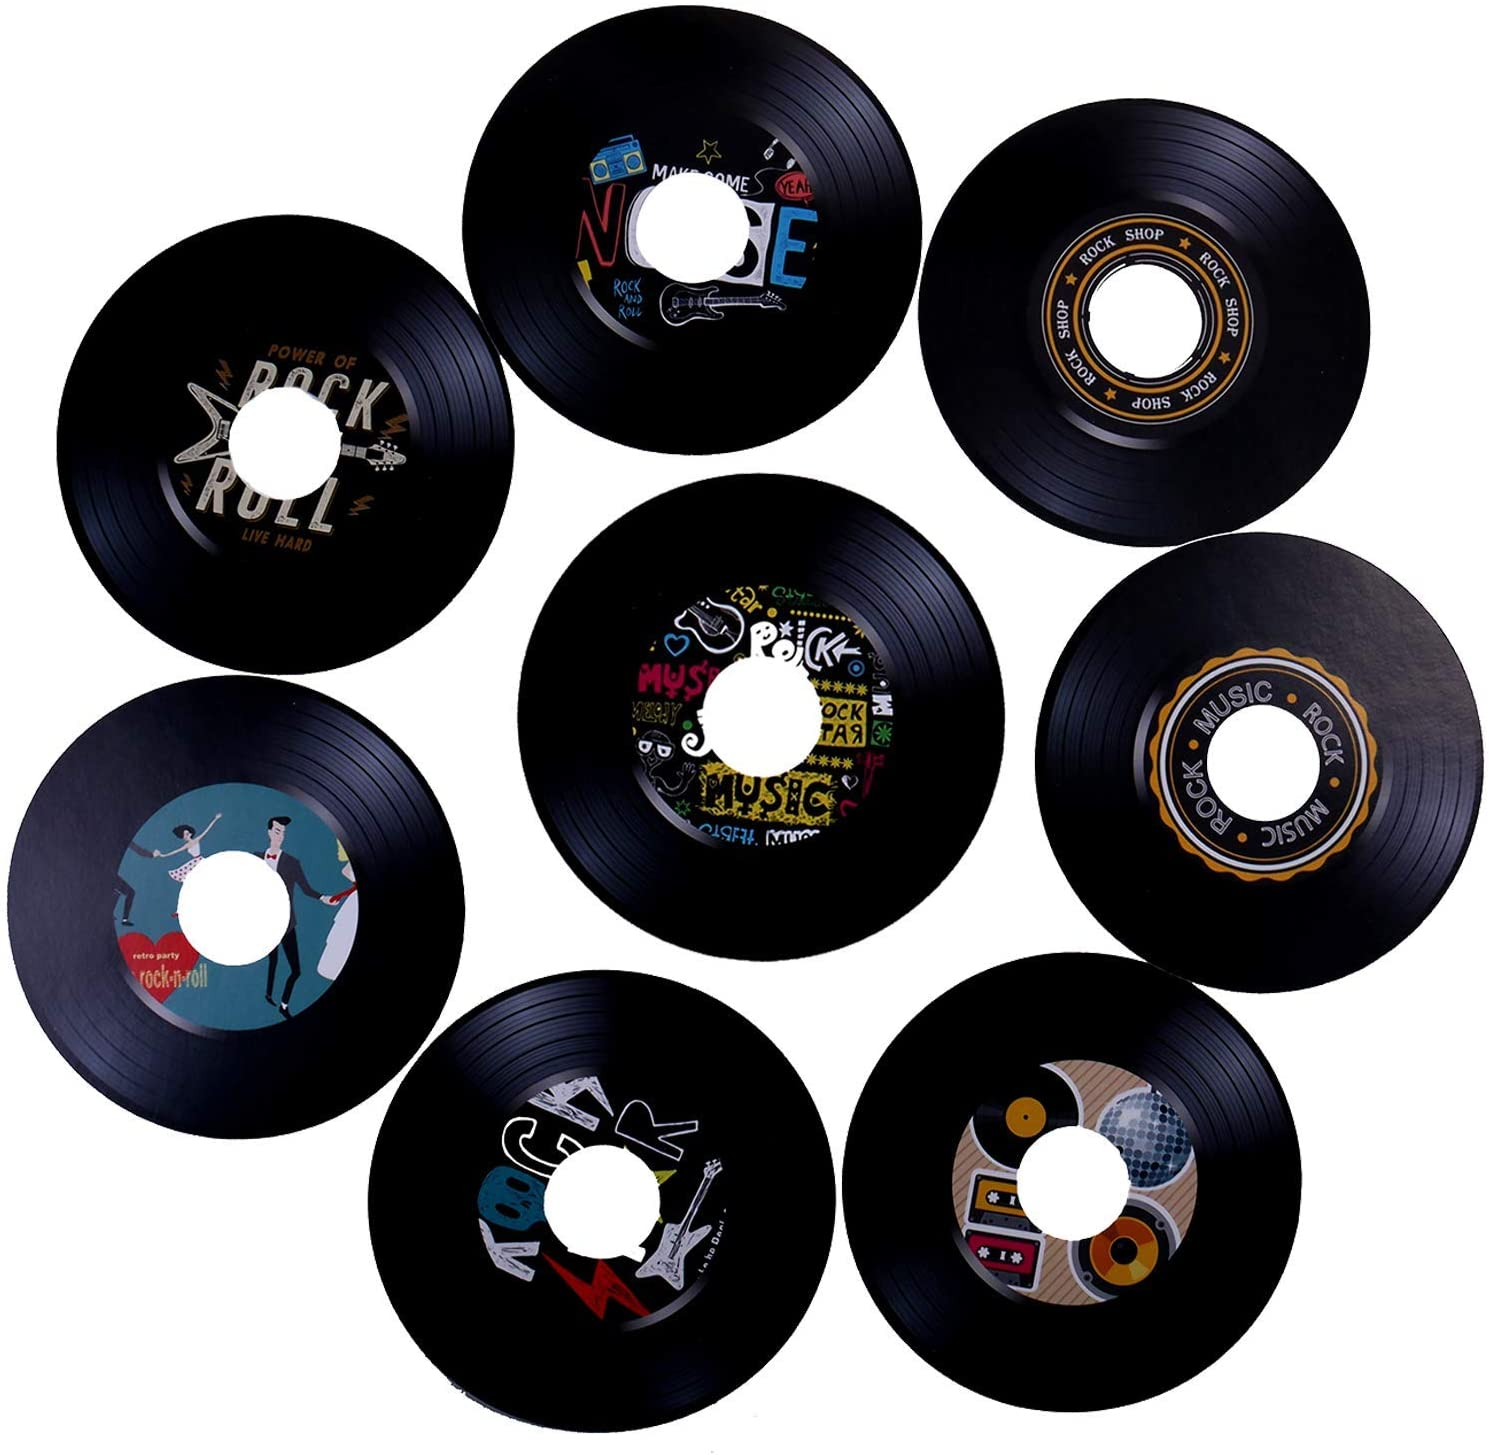 Ujuuu 40PCS Rock Music Party Decorations, 7 Inch Creative Vinyl Record Design Party Paper Decoration for Wall Decor Bar Cafe Music Party Favor Supplies